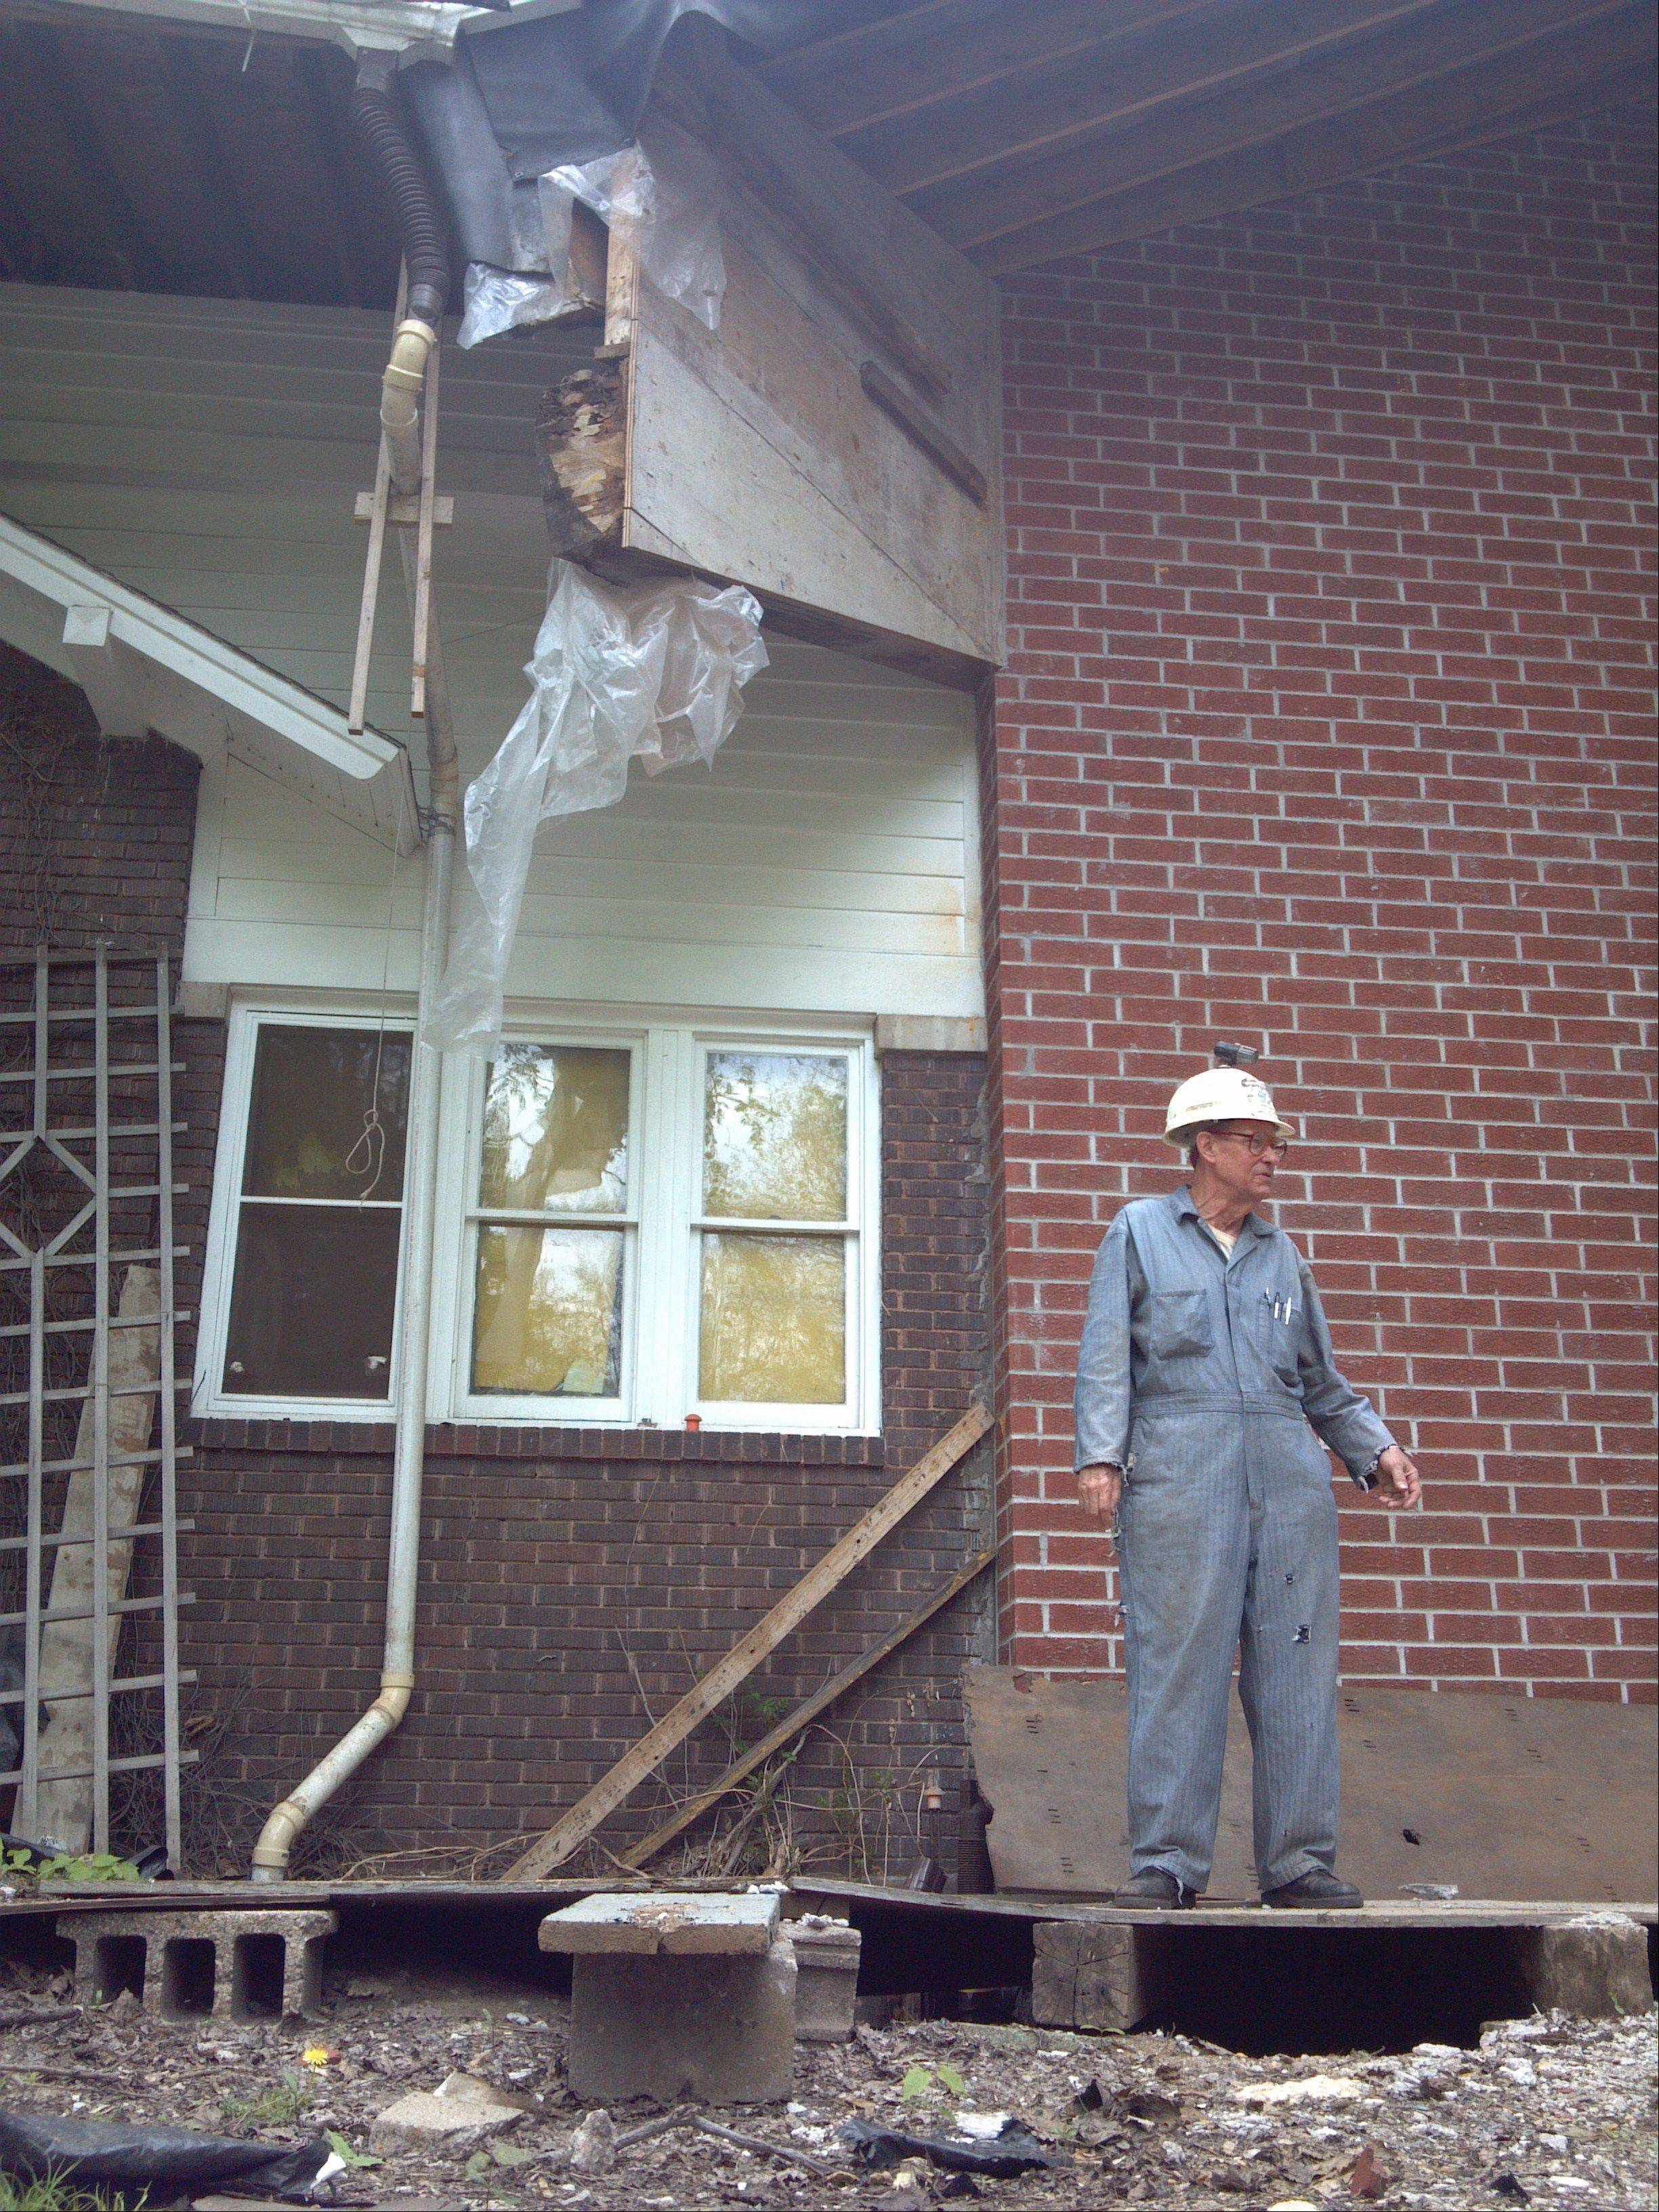 Cliff McIlvaine, who was sued by the city of St. Charles in an effort to get him to finish a project that he began in 1975, stands on a landing between his original home to the left and new, super-insulated addition on the right, which he hopes to turn into a museum.